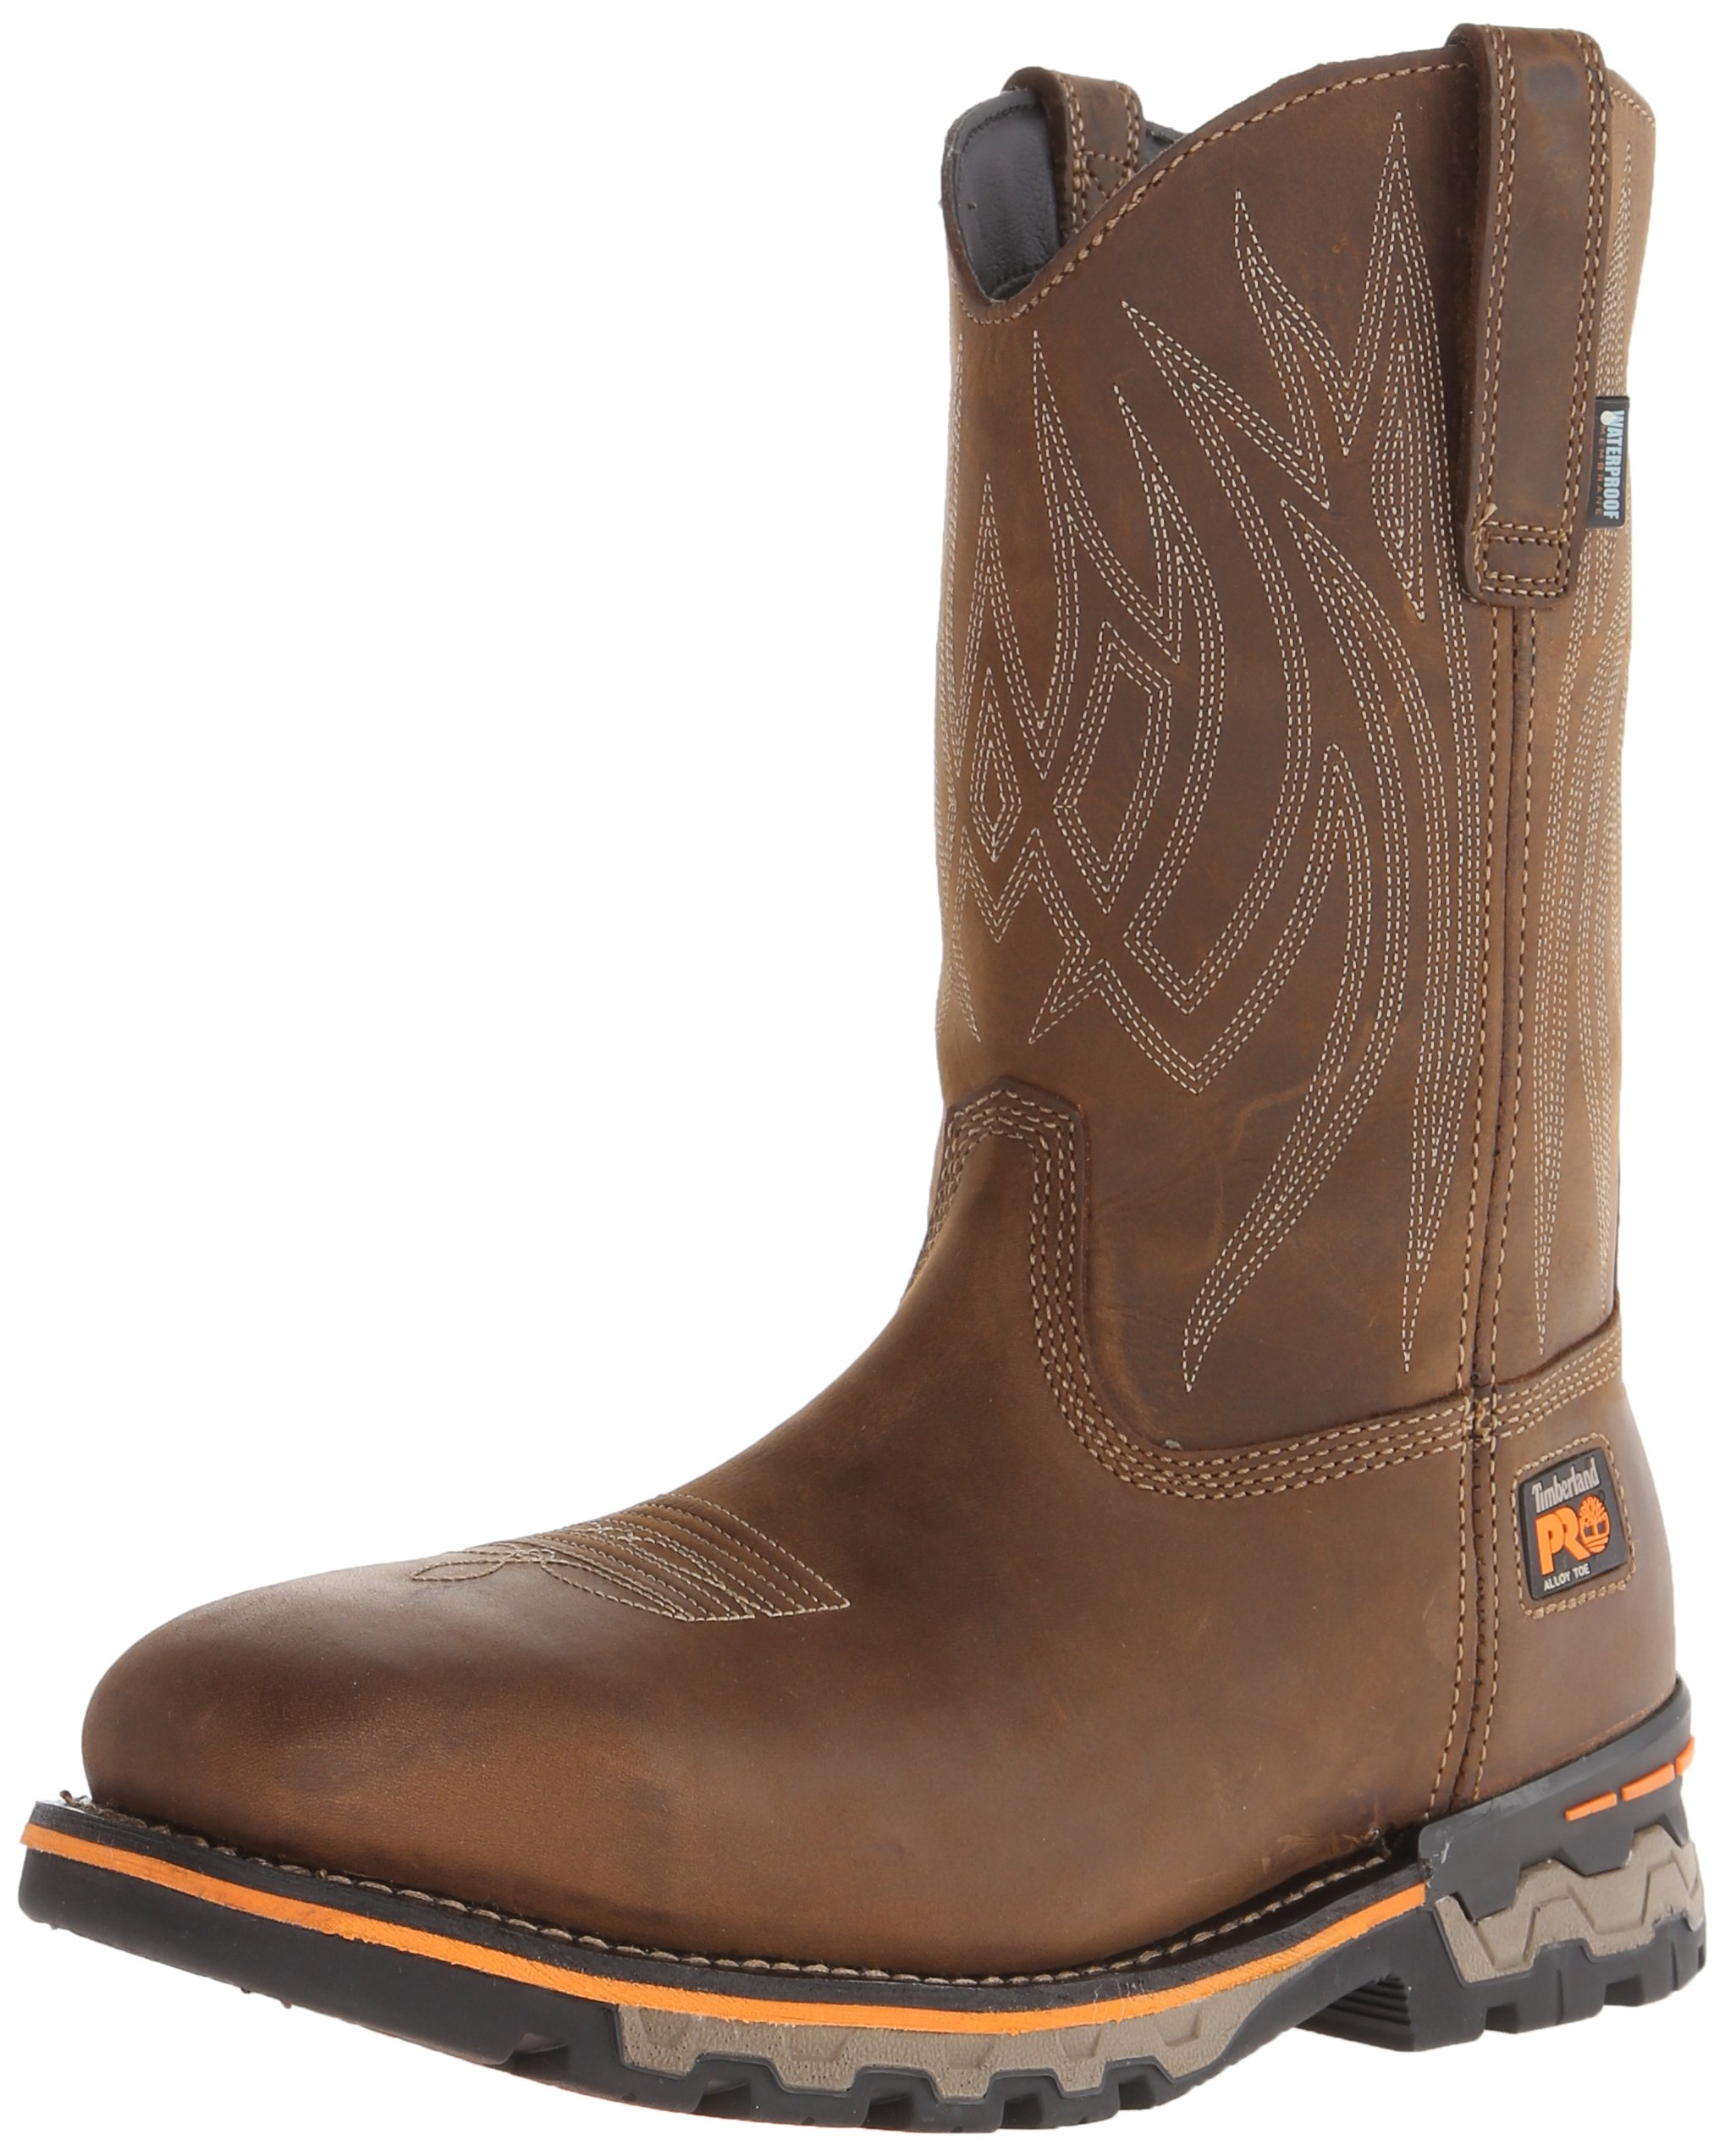 Timberland PRO Men's AG Boss Pull-On Alloy SQ Toe Work and Hunt Boot, Distressed Brown Leather, 7.5 W US